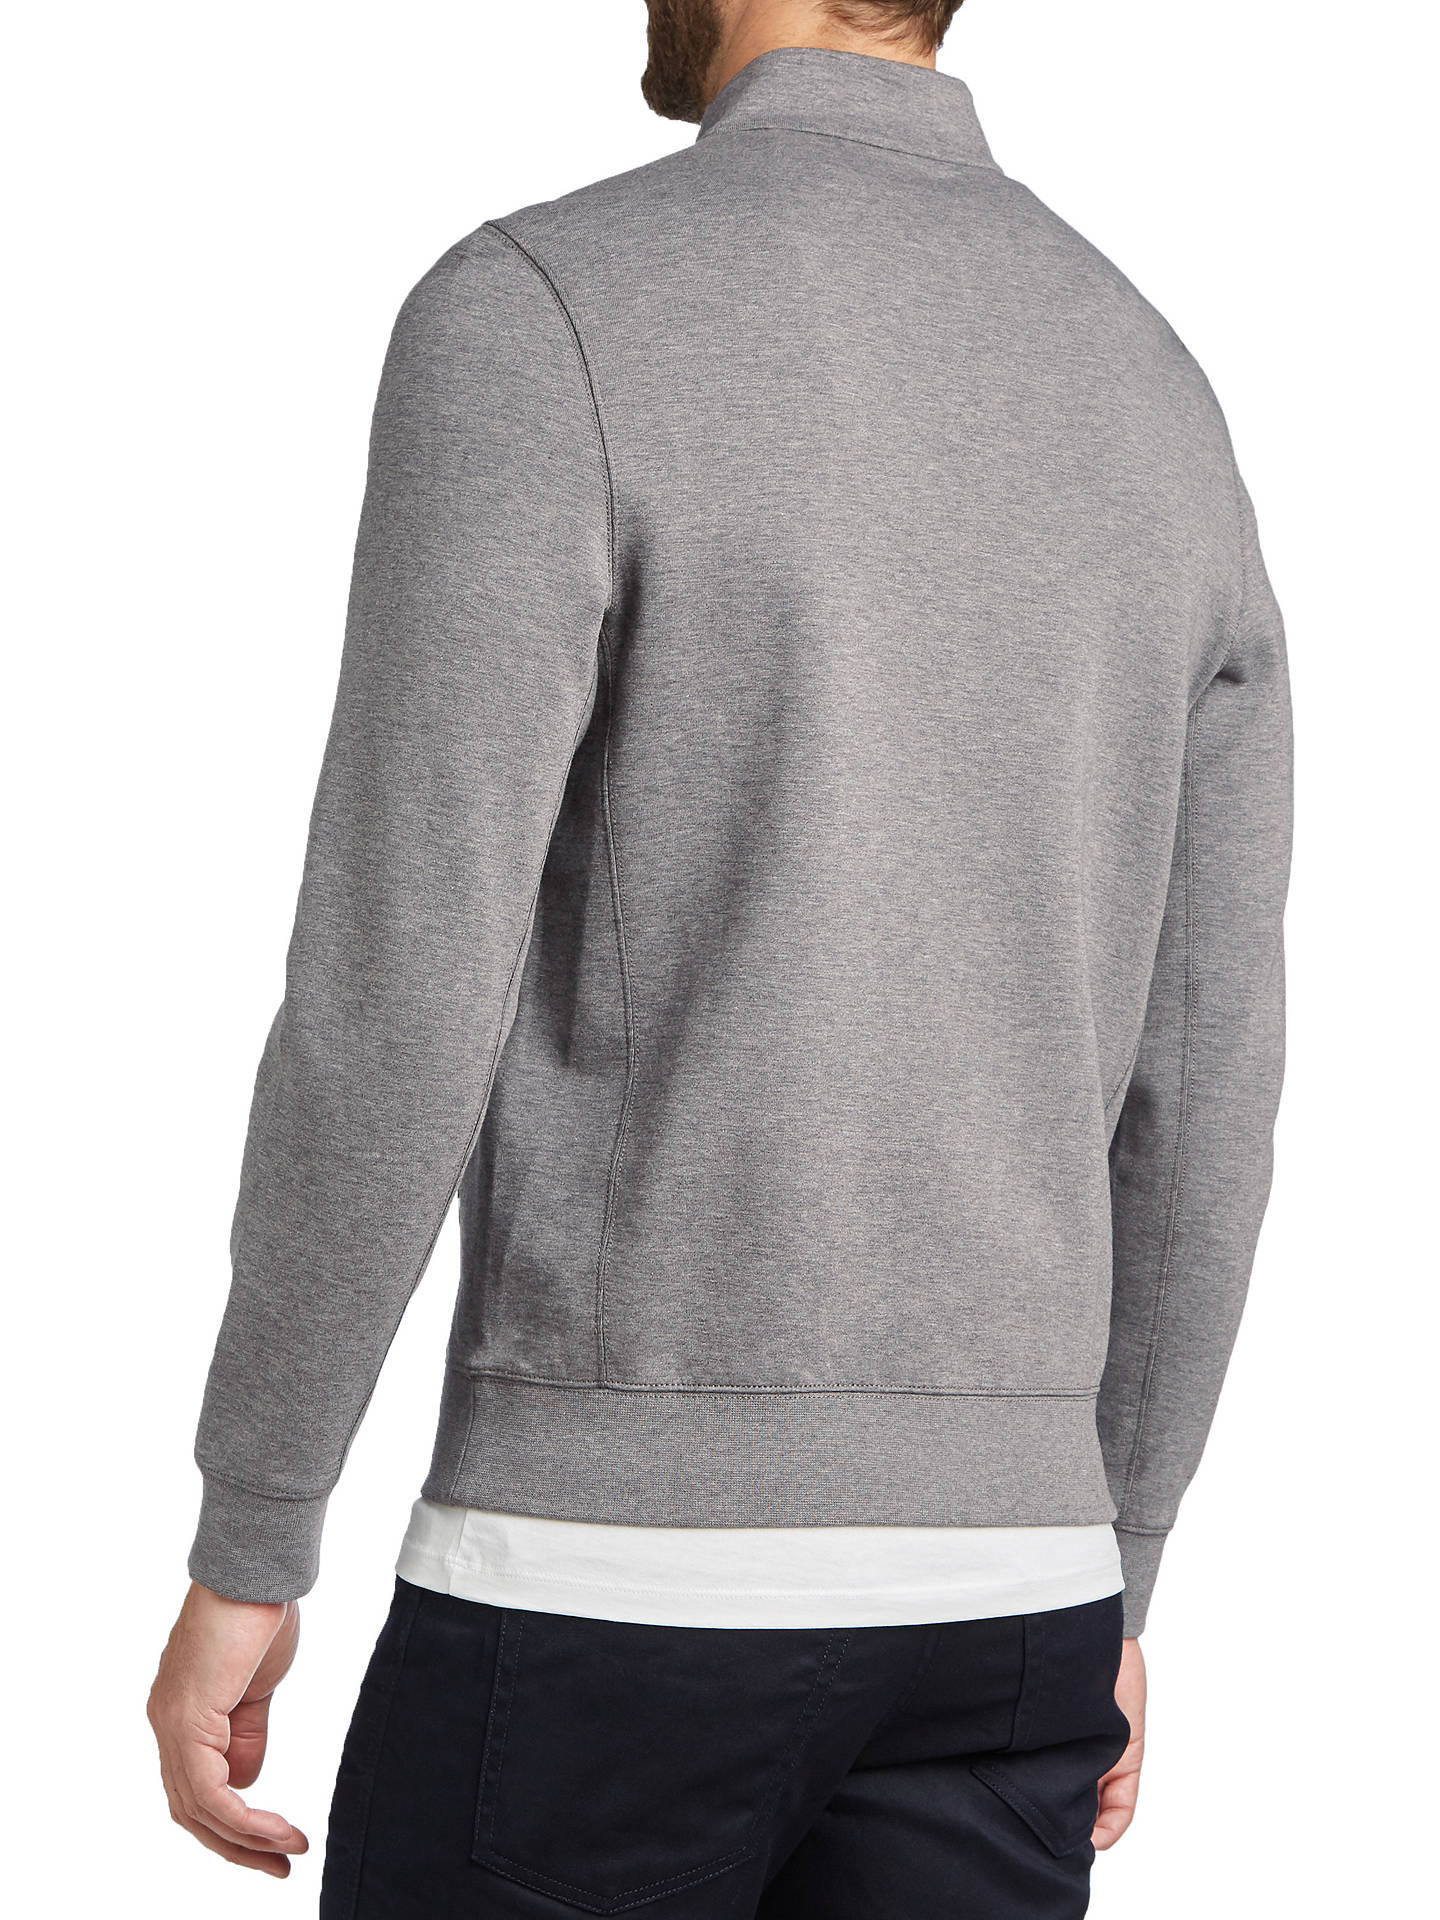 BuyBOSS Siegal Half Zip Jumper, Medium Grey, L Online at johnlewis.com